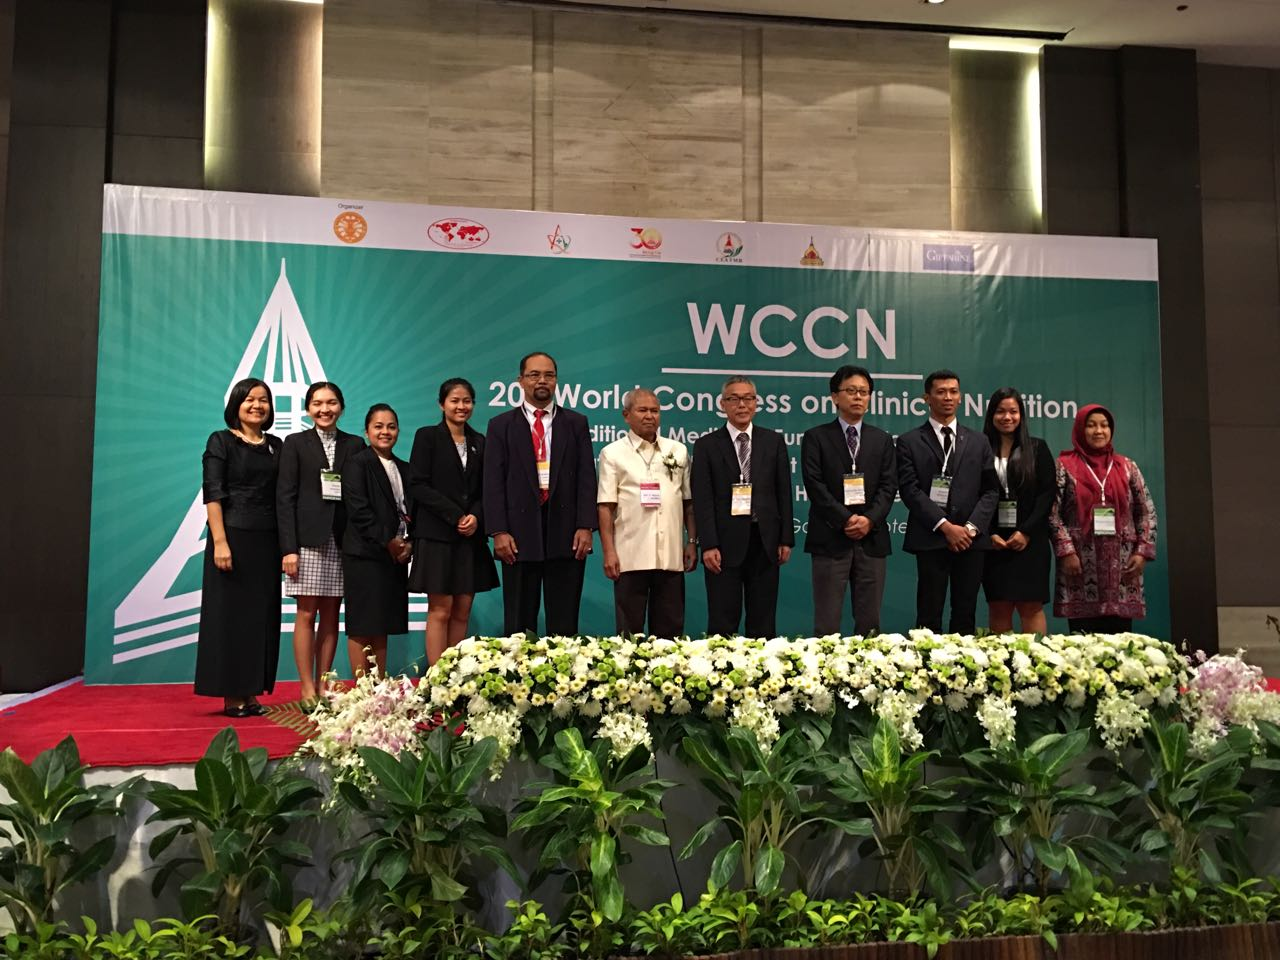 20th World Congress on Clinical Nutrition Bangkok